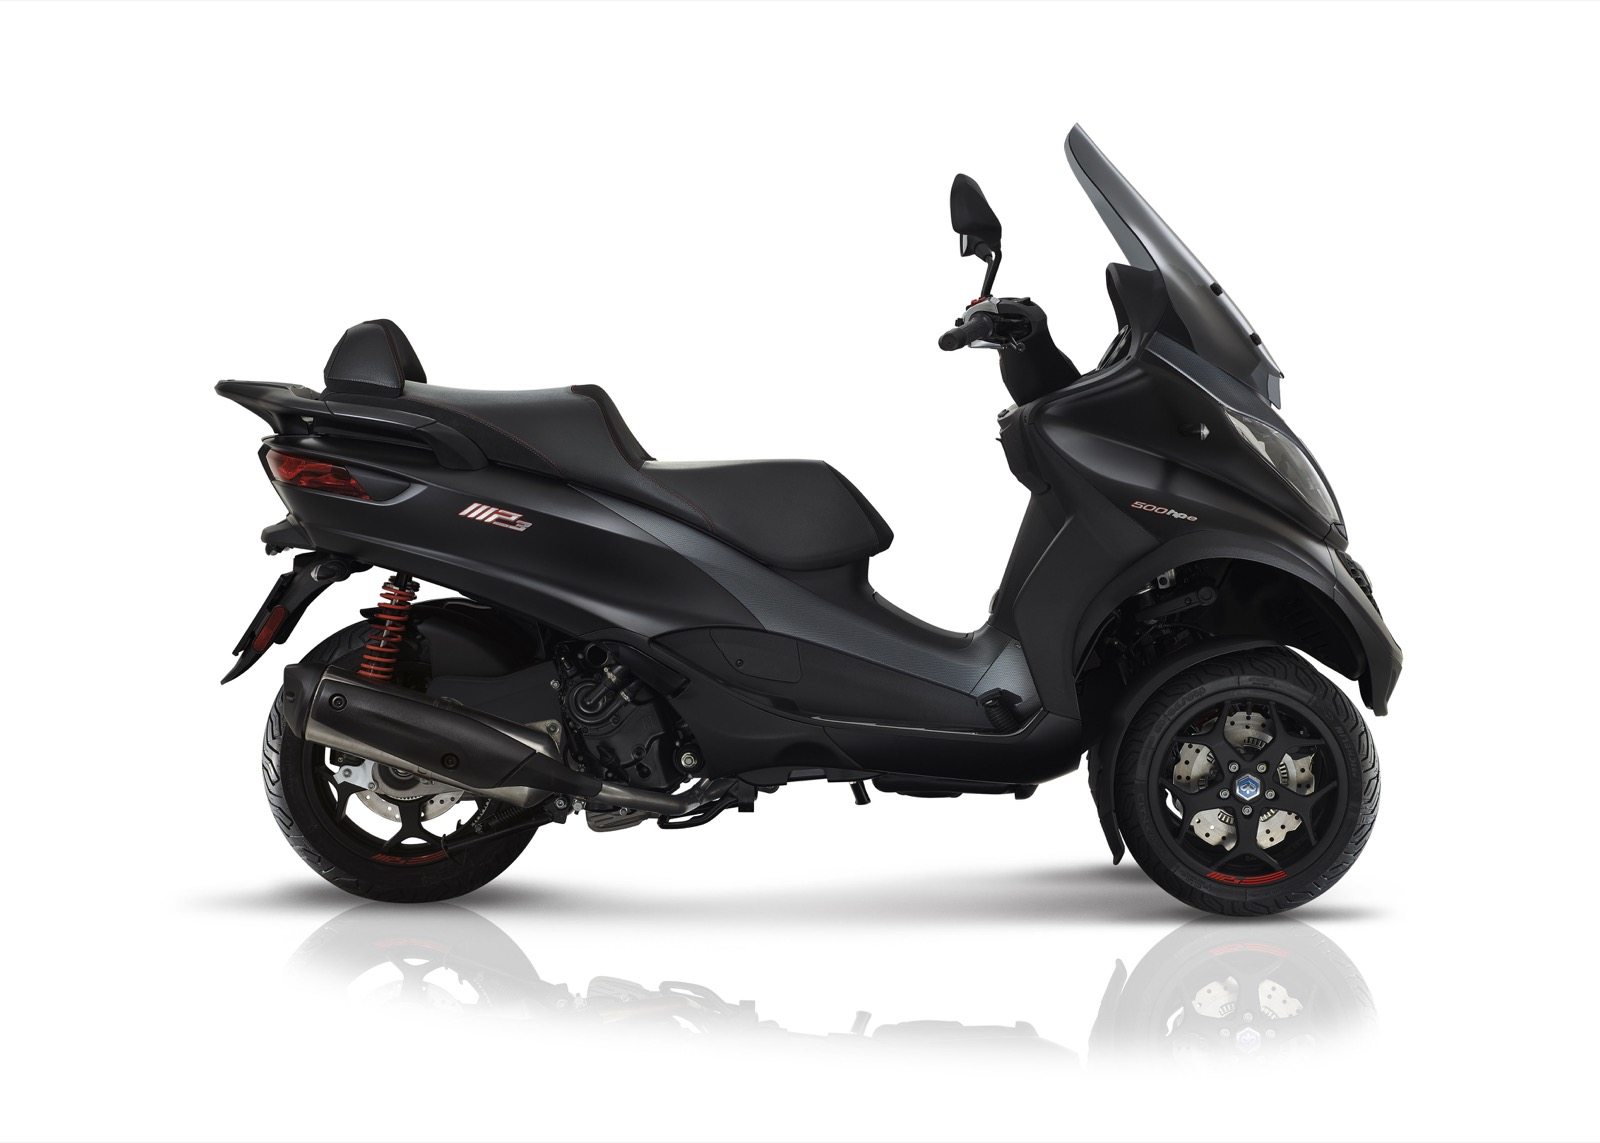 Piaggio mp3 500 hpe sport black-12-